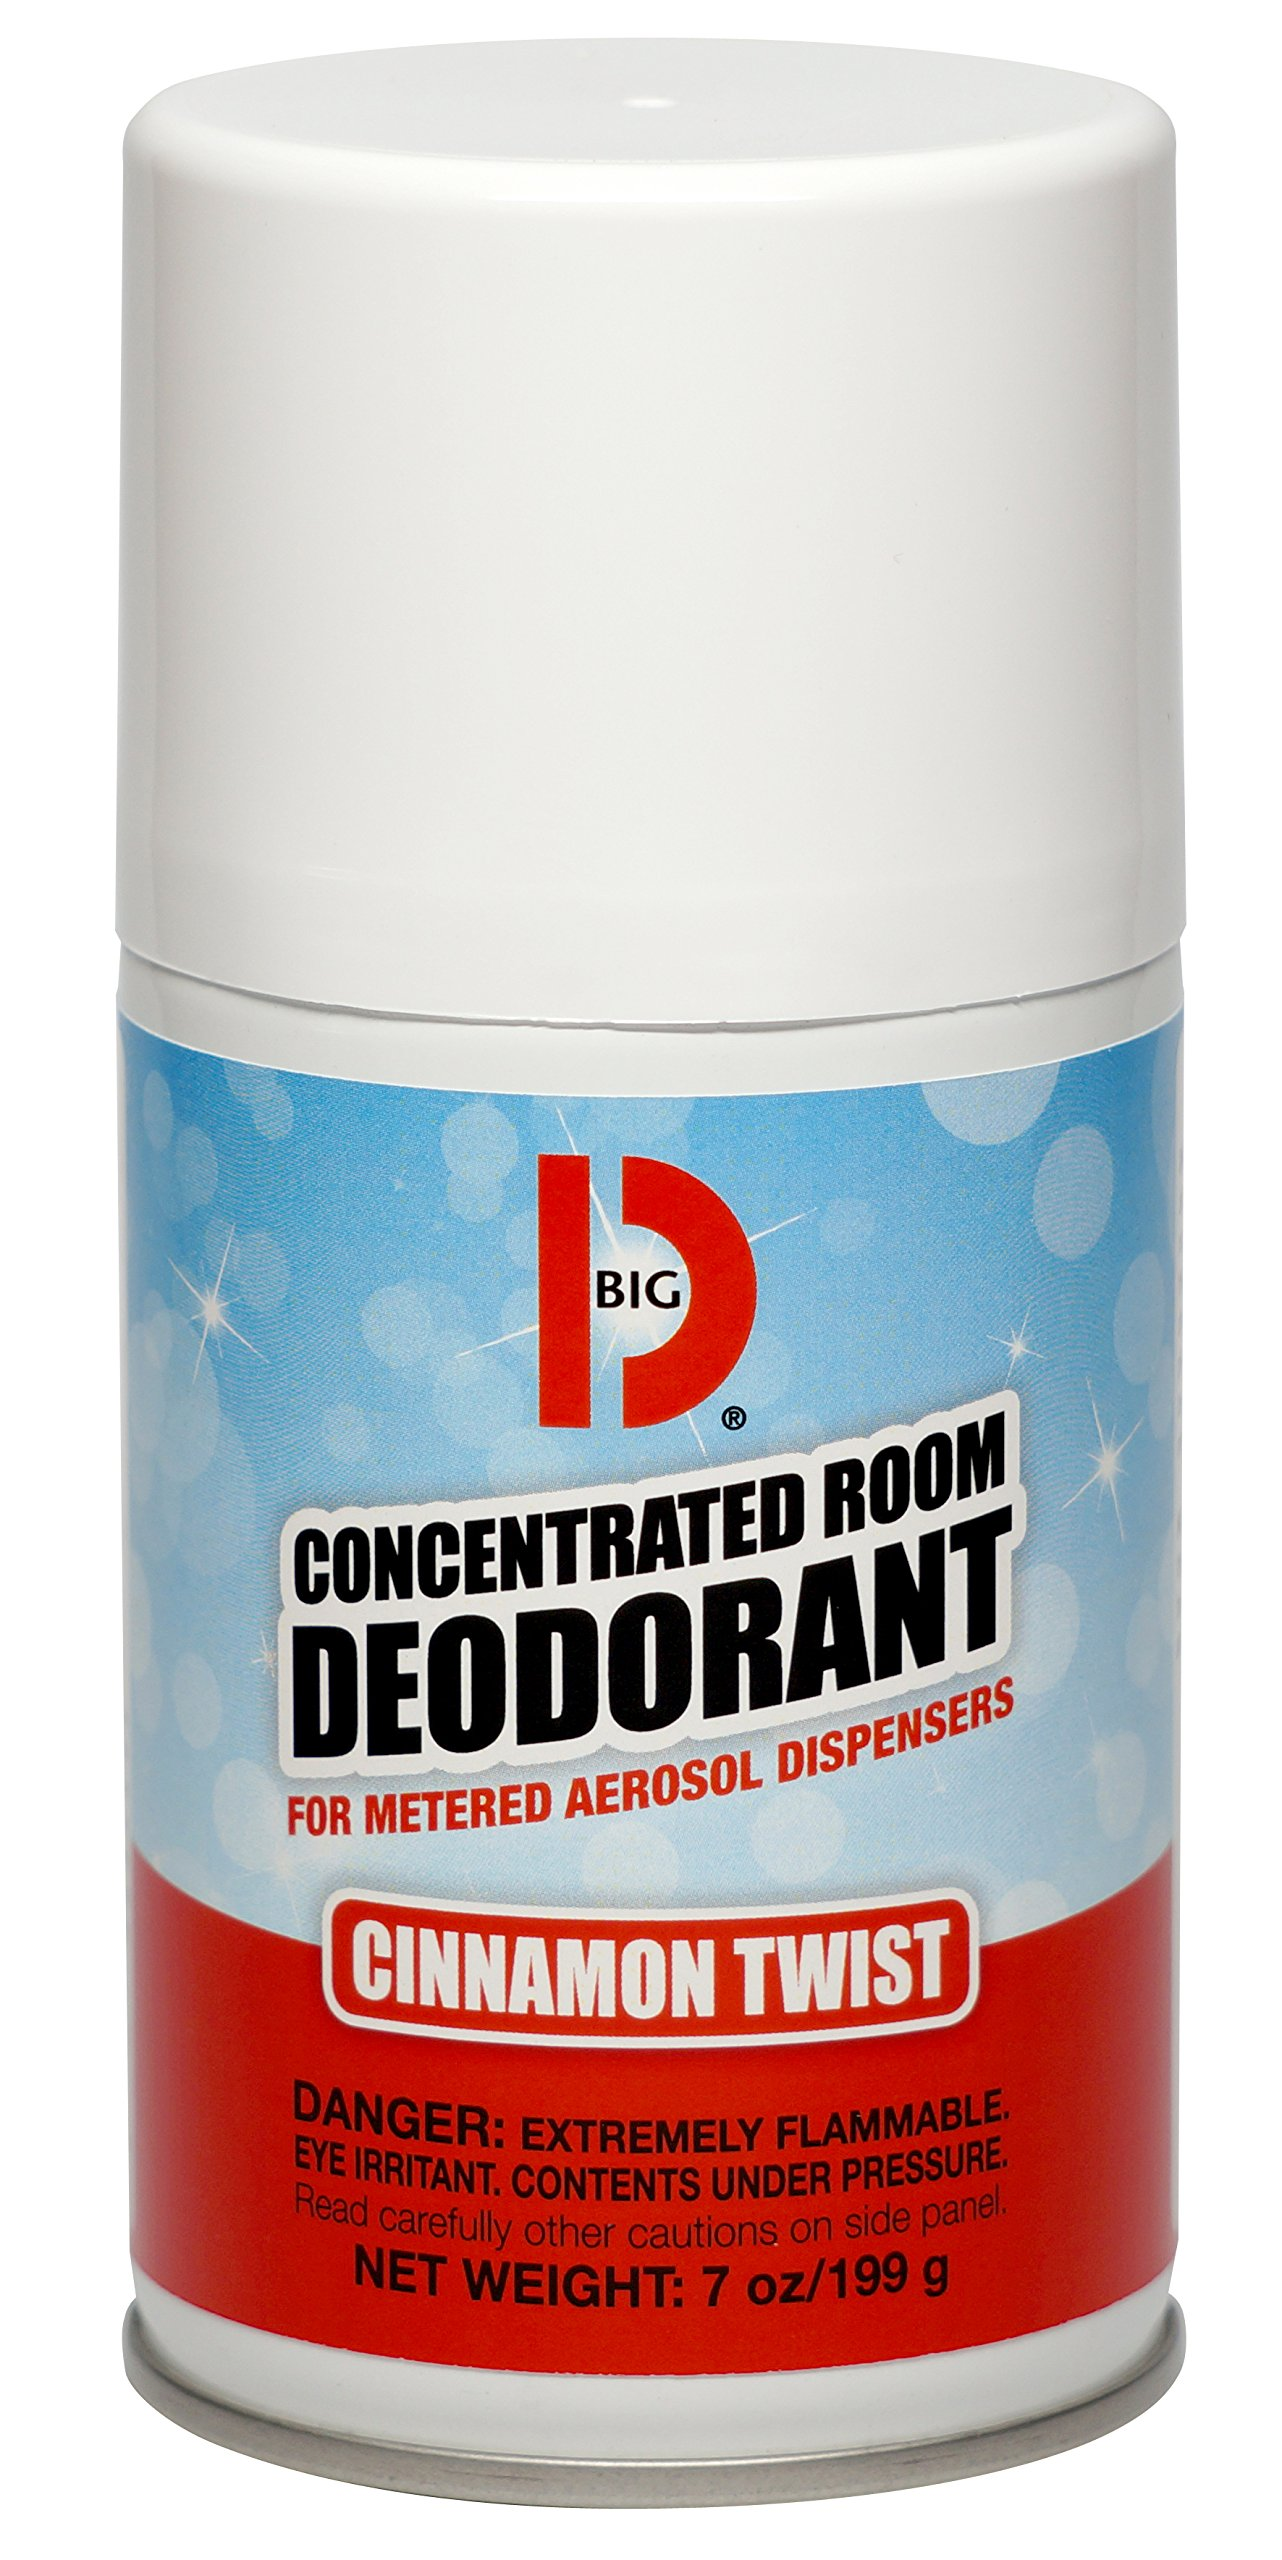 Big D 469 Concentrated Room Deodorant for Metered Aerosol Dispensers, Cinnamon Twist Fragrance, 7 oz (Pack of 12) - Air freshener ideal for restrooms, offices, schools, restaurants, hotels